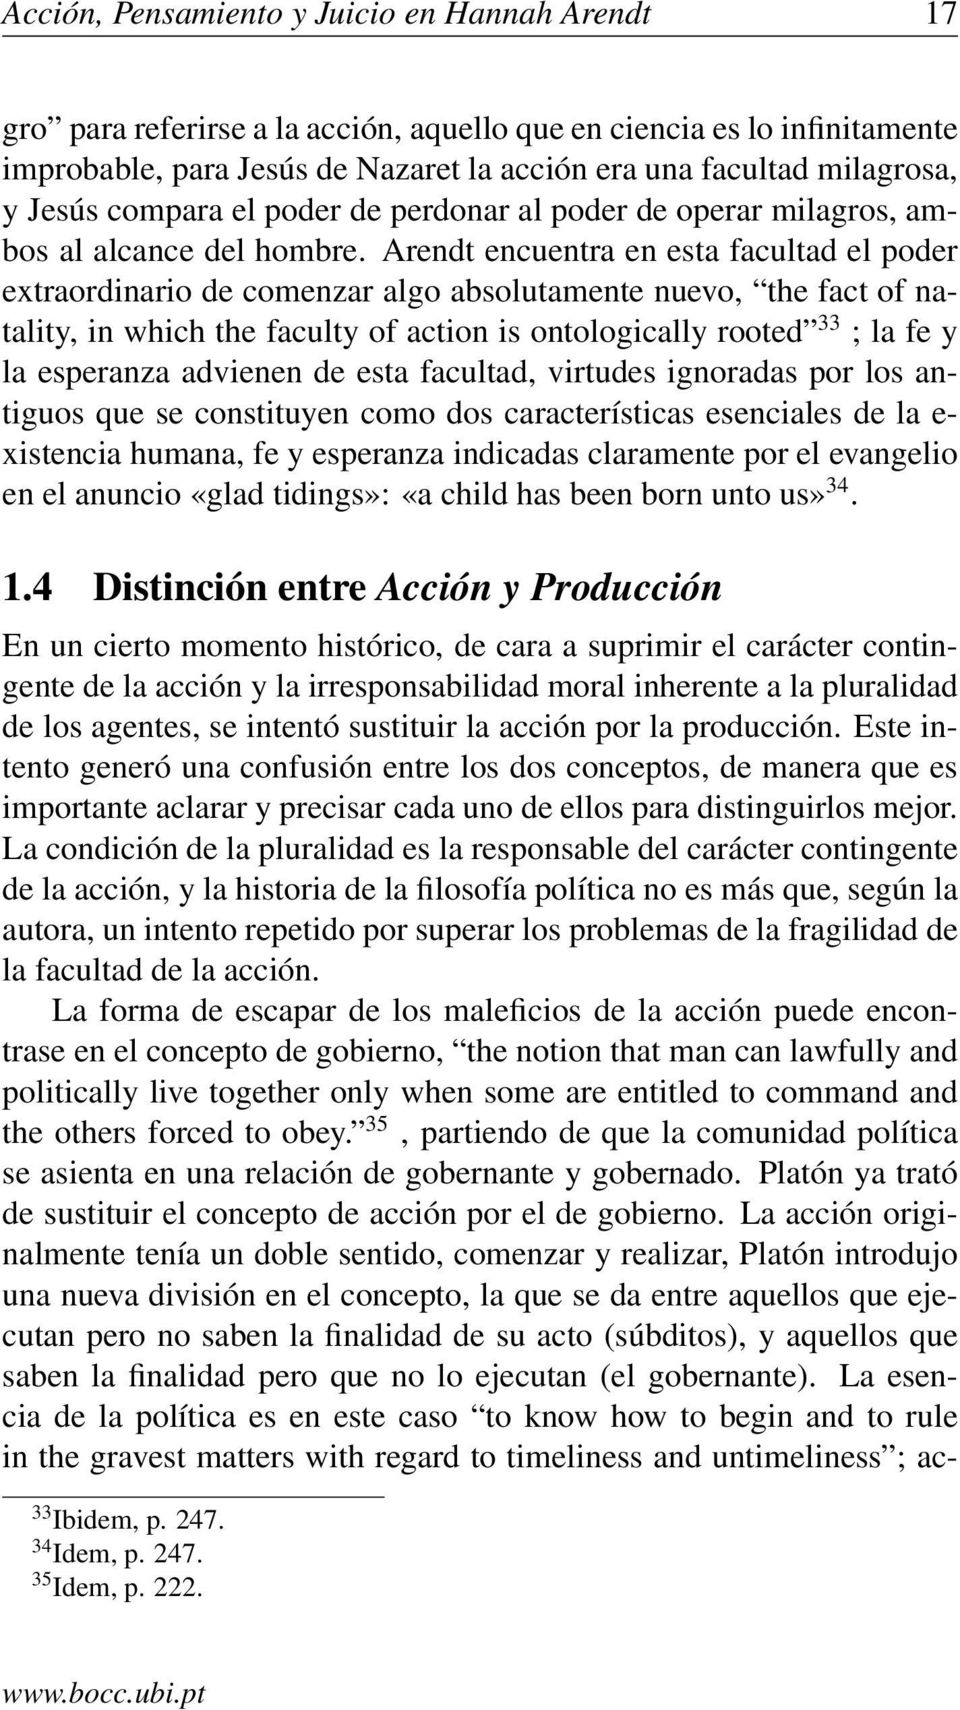 Arendt encuentra en esta facultad el poder extraordinario de comenzar algo absolutamente nuevo, the fact of natality, in which the faculty of action is ontologically rooted 33 ; la fe y la esperanza